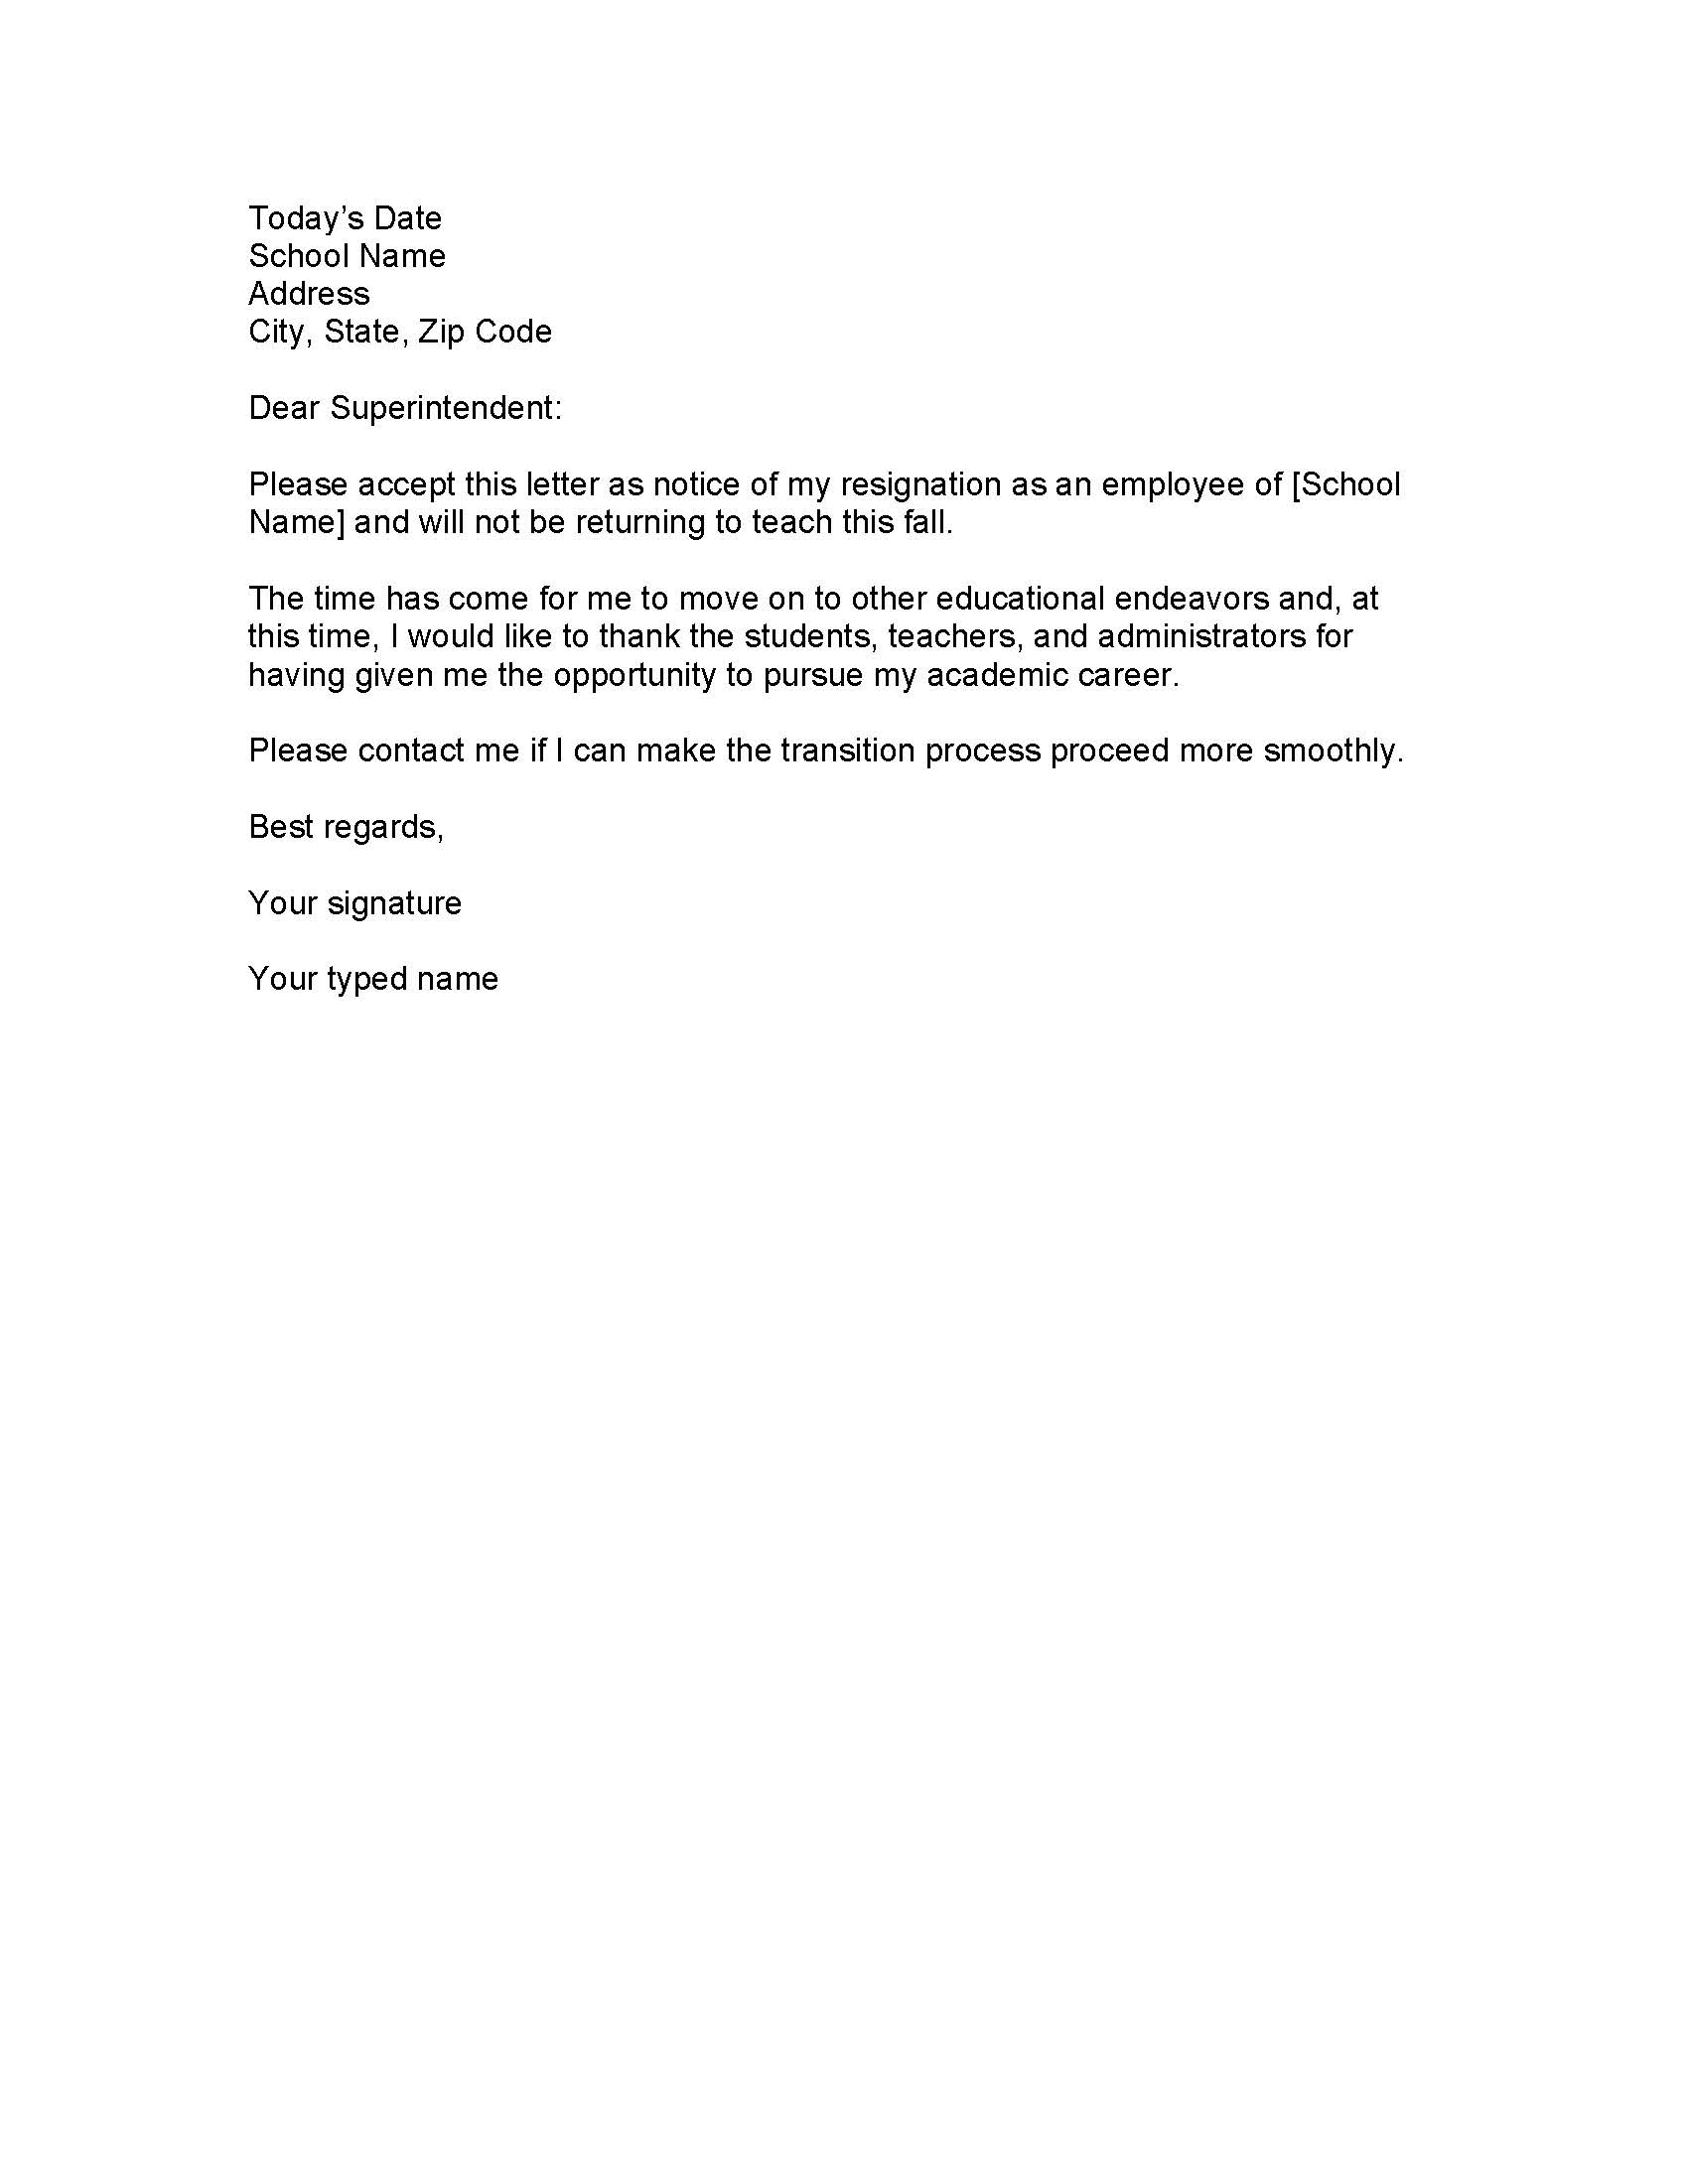 Delightful Sample Teacher Resignation Letter U2013 Word U2013 PDF